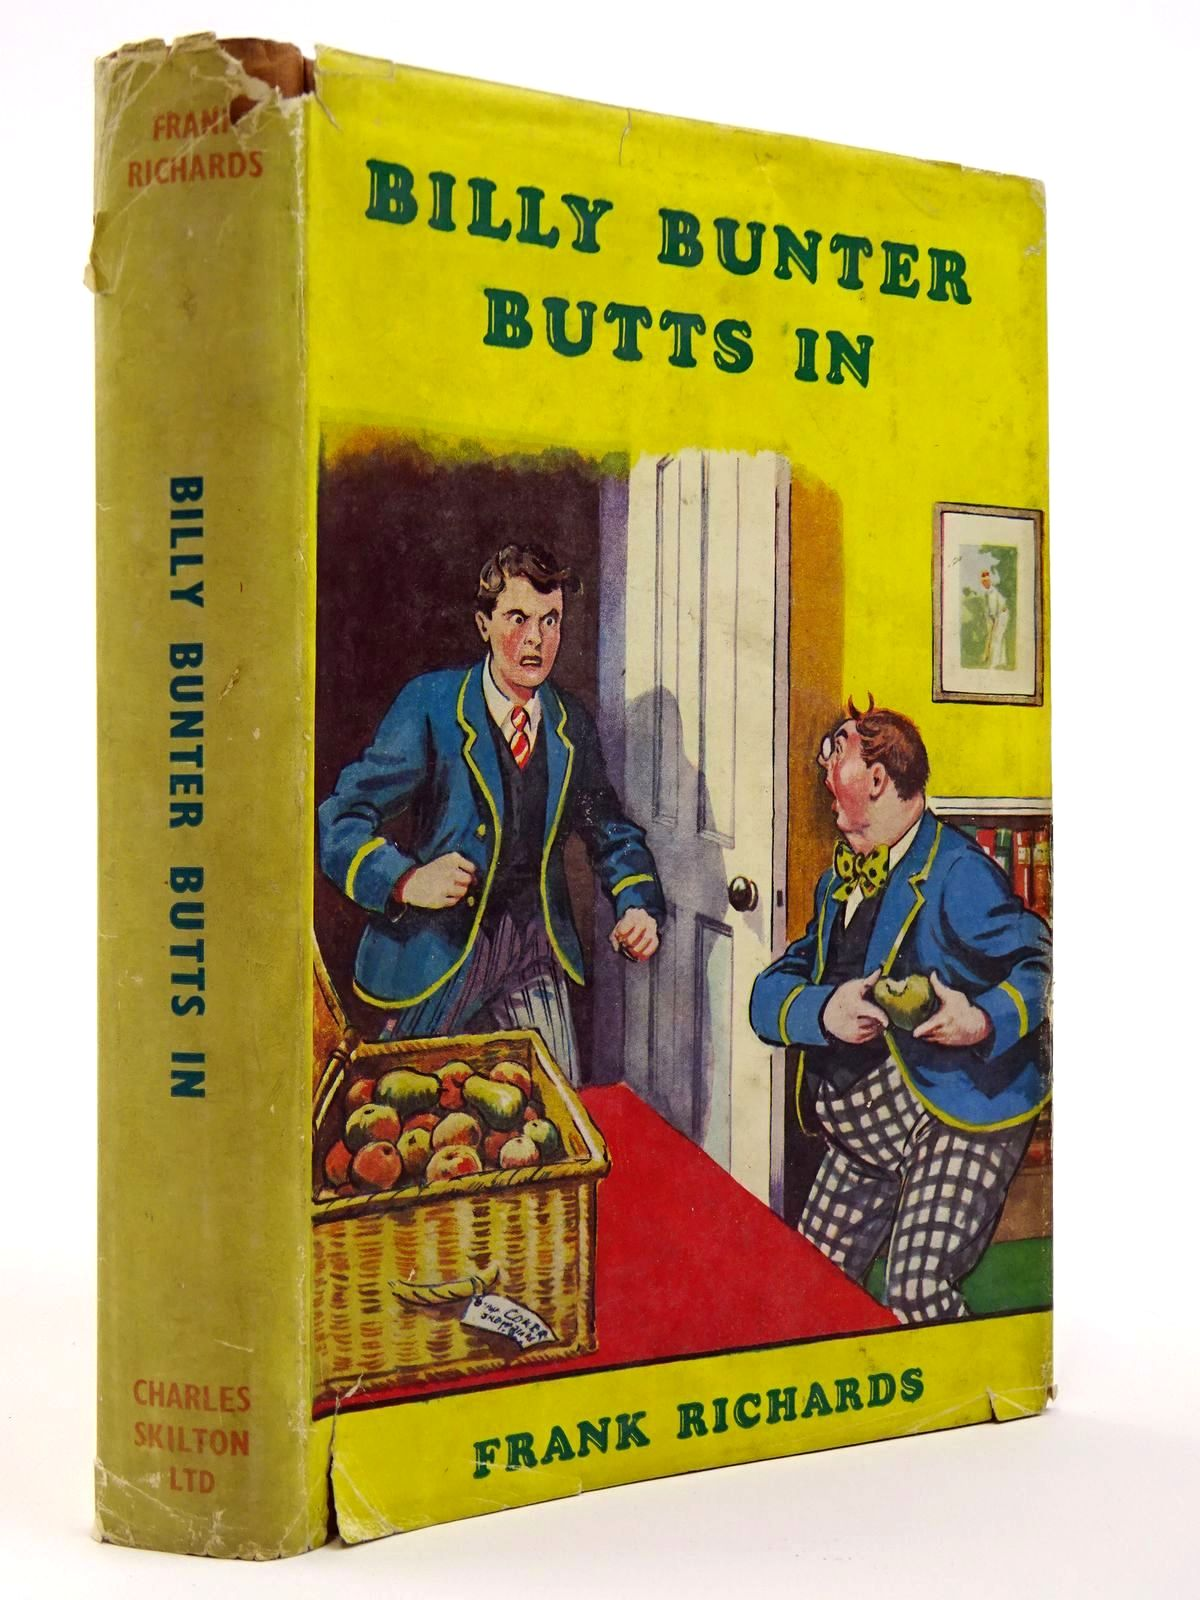 Photo of BILLY BUNTER BUTTS IN written by Richards, Frank illustrated by Macdonald, R.J. published by Charles Skilton Ltd. (STOCK CODE: 2129410)  for sale by Stella & Rose's Books